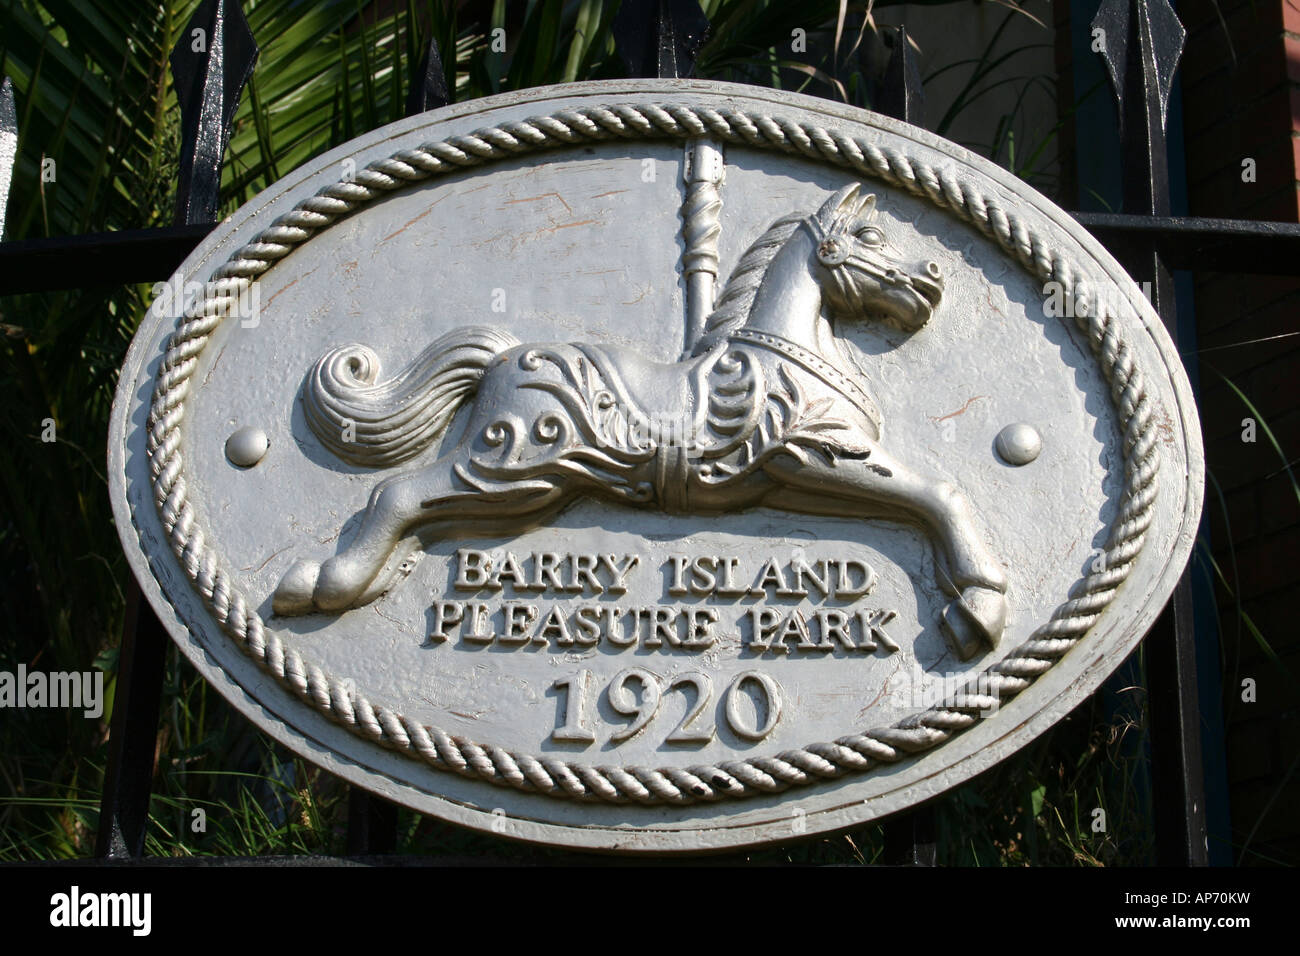 Plaque on Gate Barry Island Funfair - Stock Image